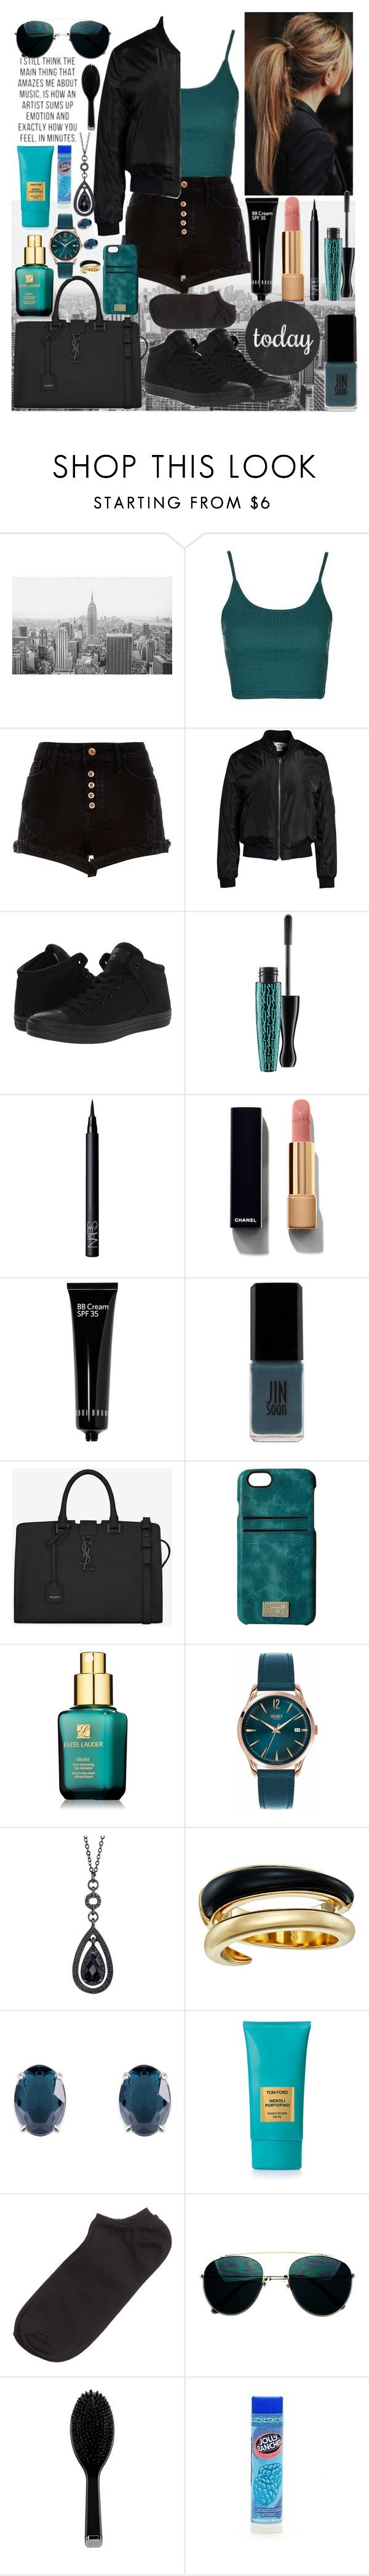 """""""Last summer Outfit                ~Teals~"""" by inspiredfashionn ❤ liked on Polyvore featuring Topshop, River Island, Sans Souci, Converse, MAC Cosmetics, NARS Cosmetics, Chanel, Bobbi Brown Cosmetics, JINsoon and Yves Saint Laurent"""